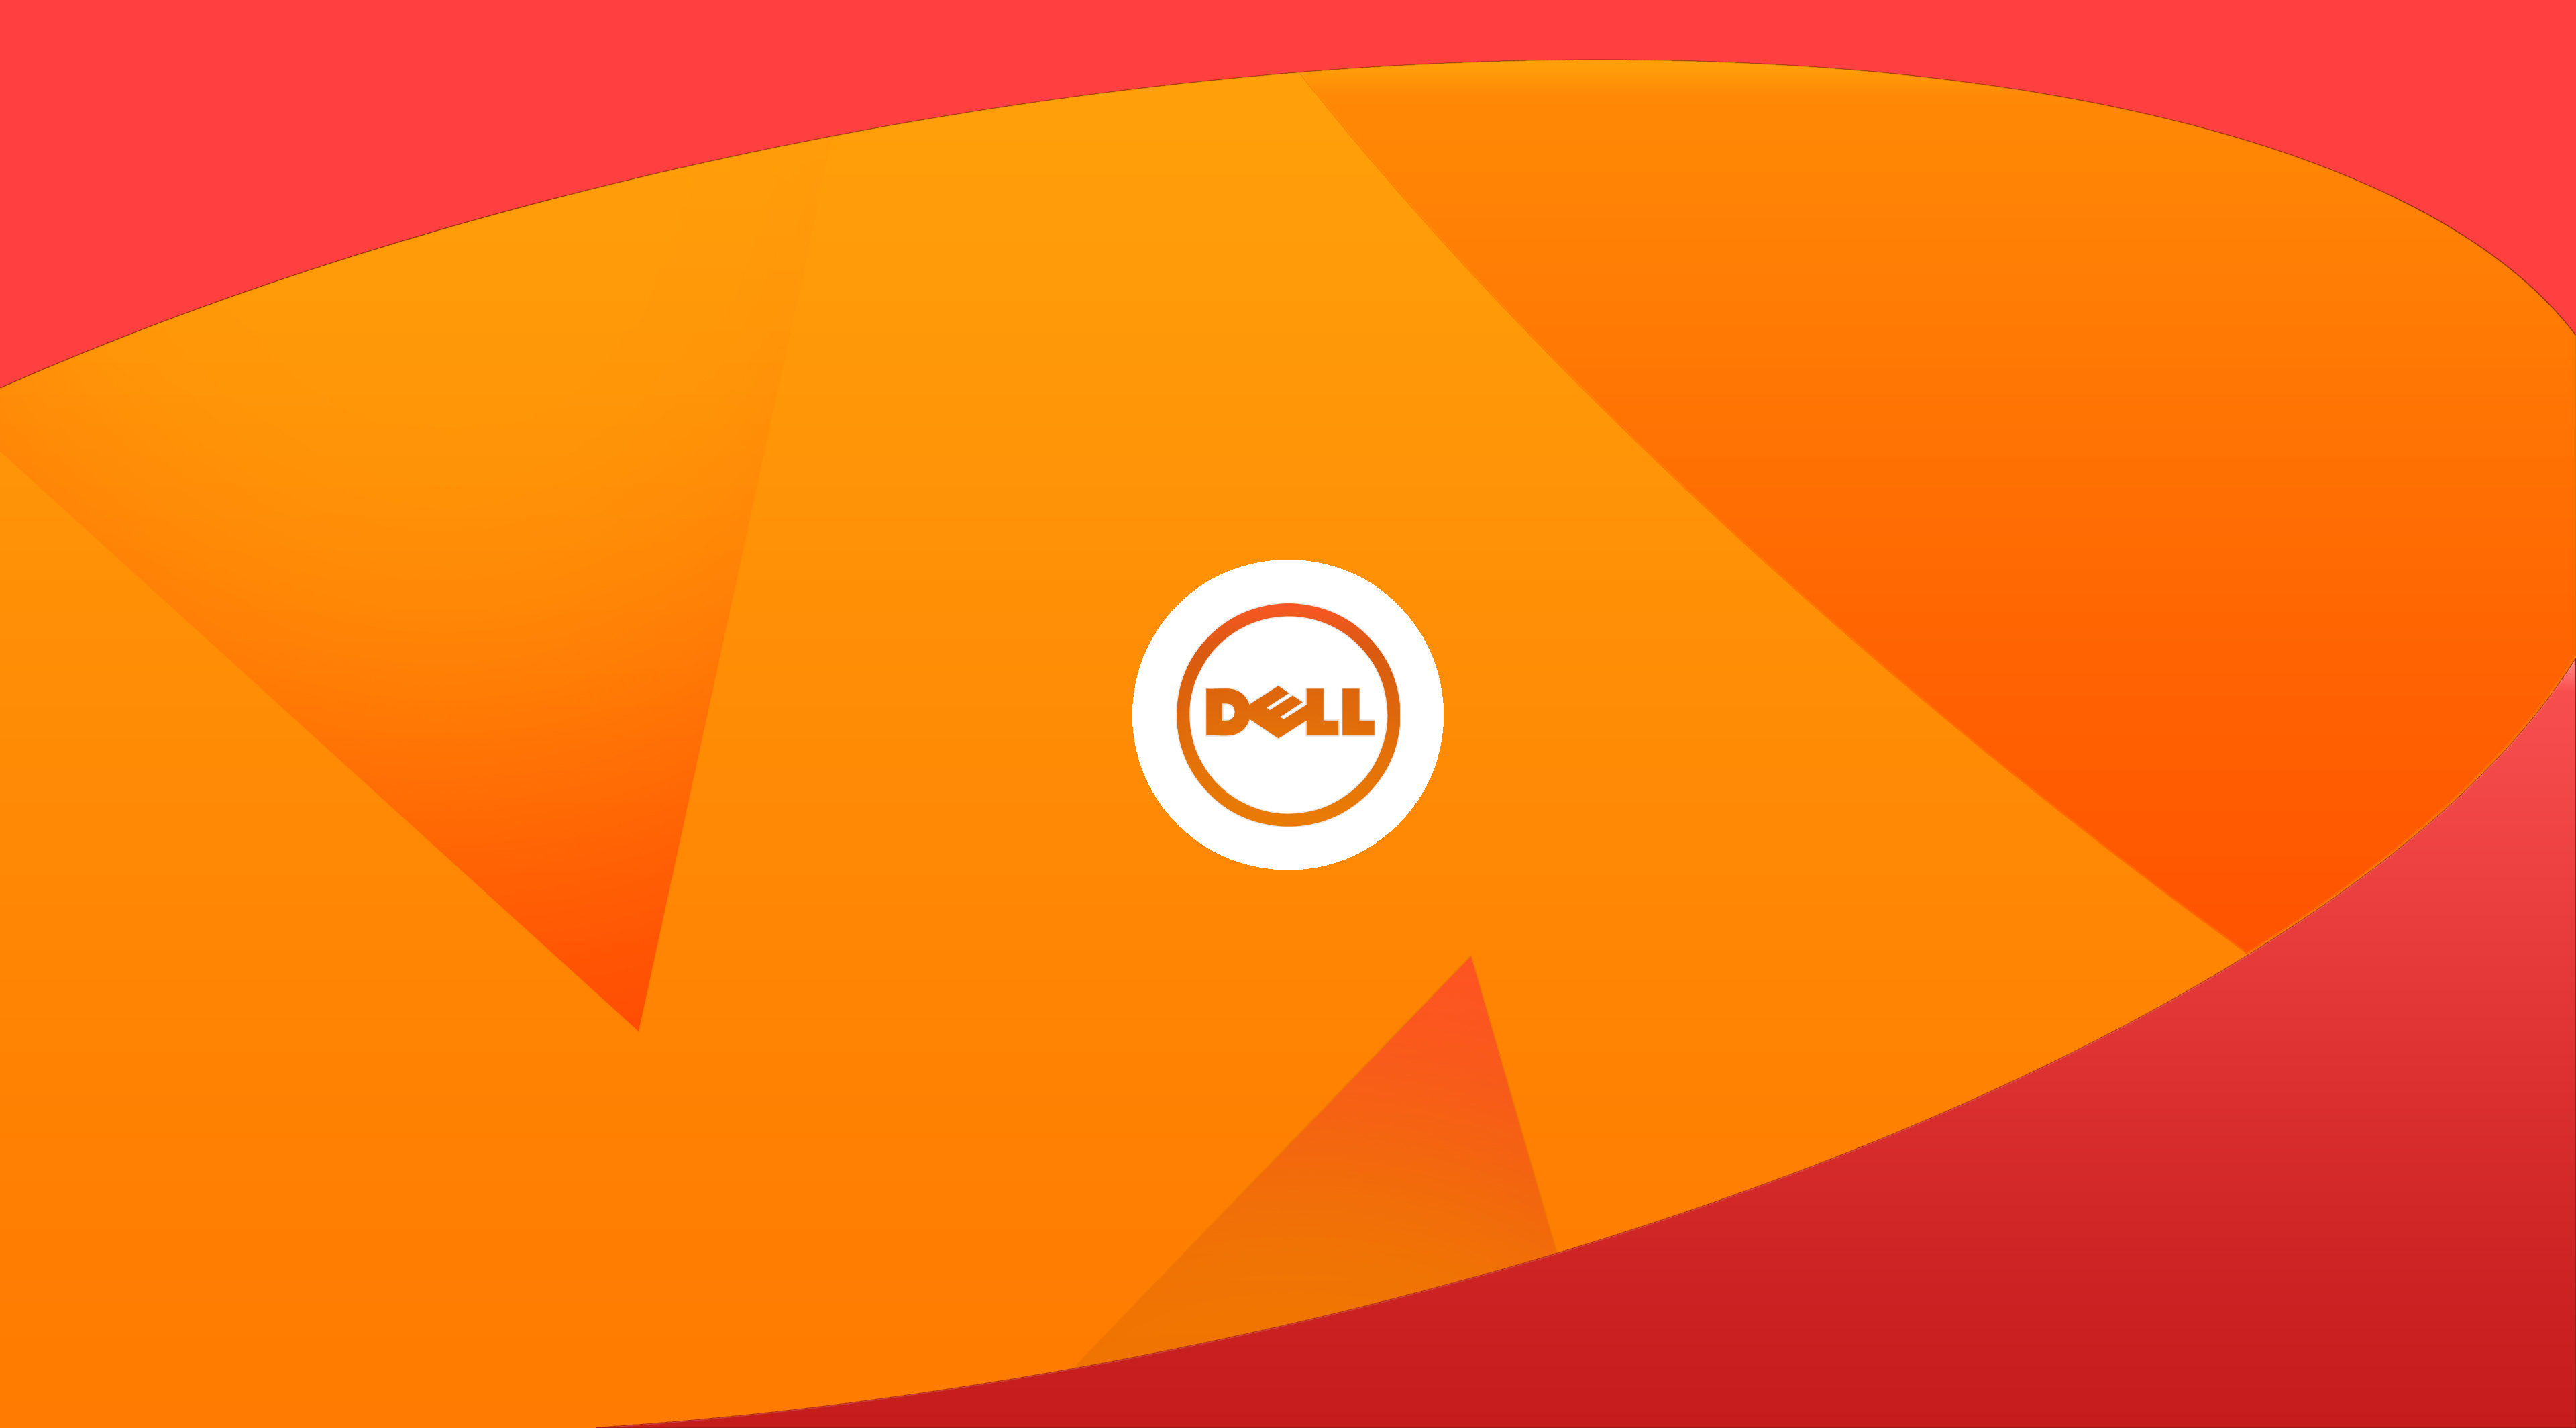 Dell Wallpapers 11 3840 X 2128